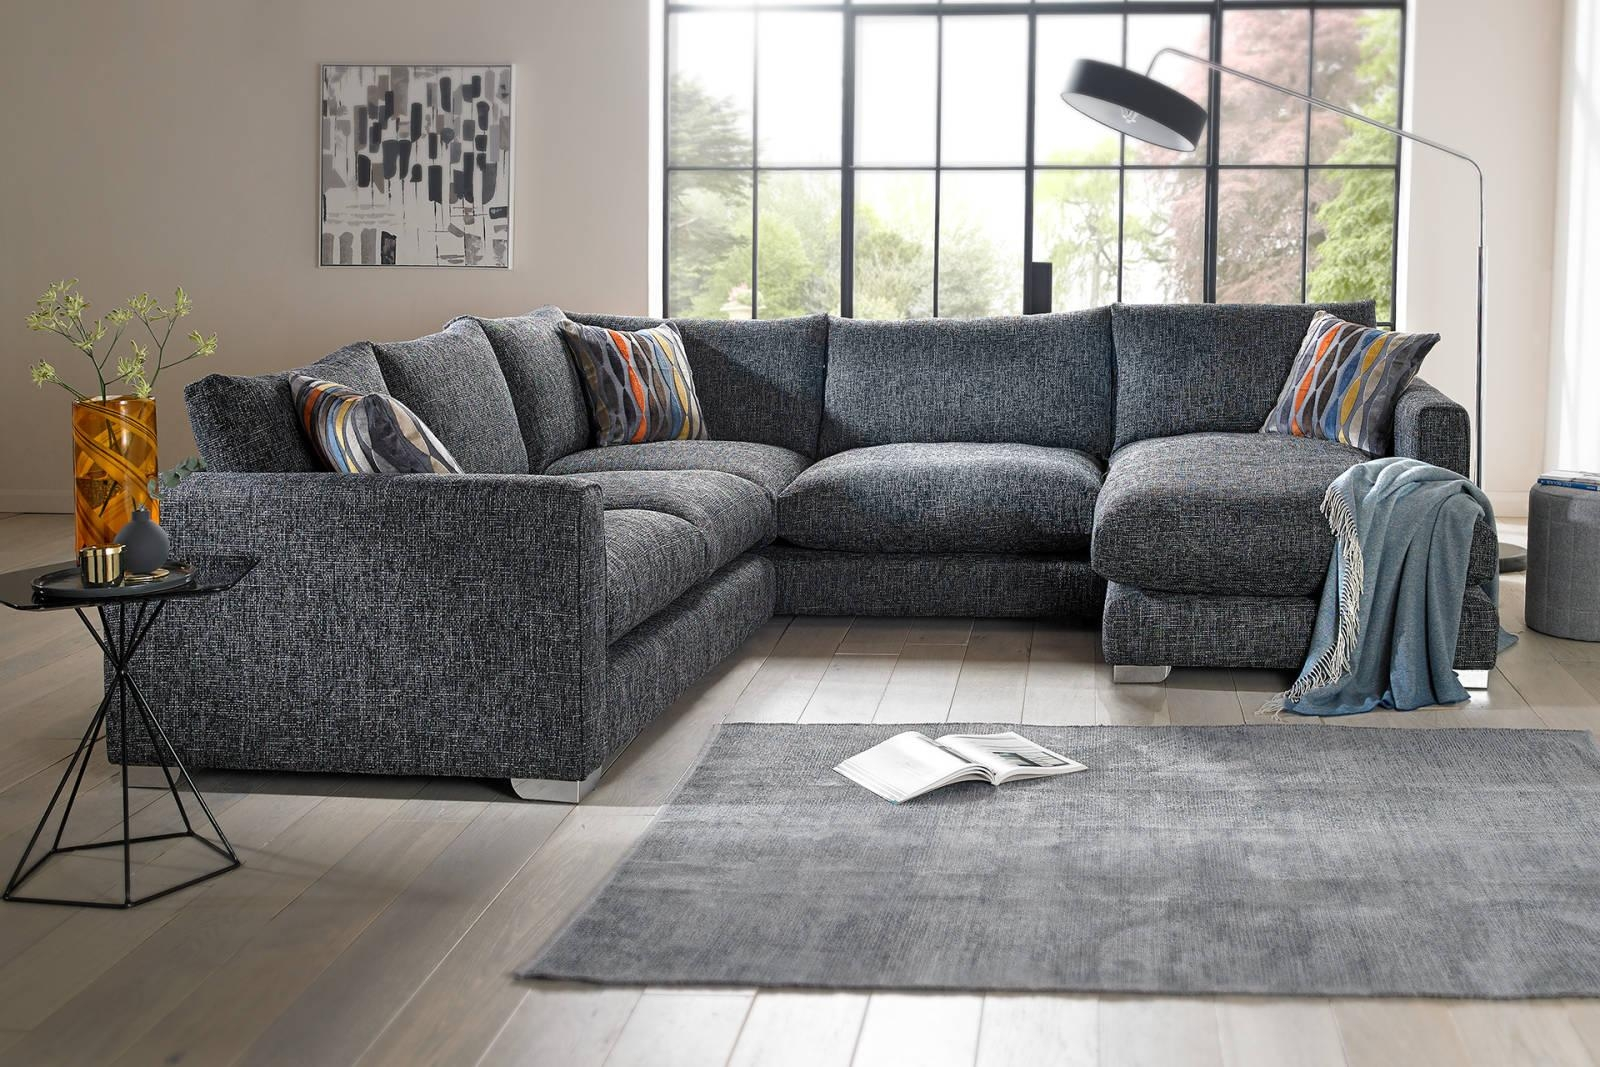 Fabric Sofas, Corners And Chairs | Sofology Throughout Fabric Sofas (View 8 of 20)